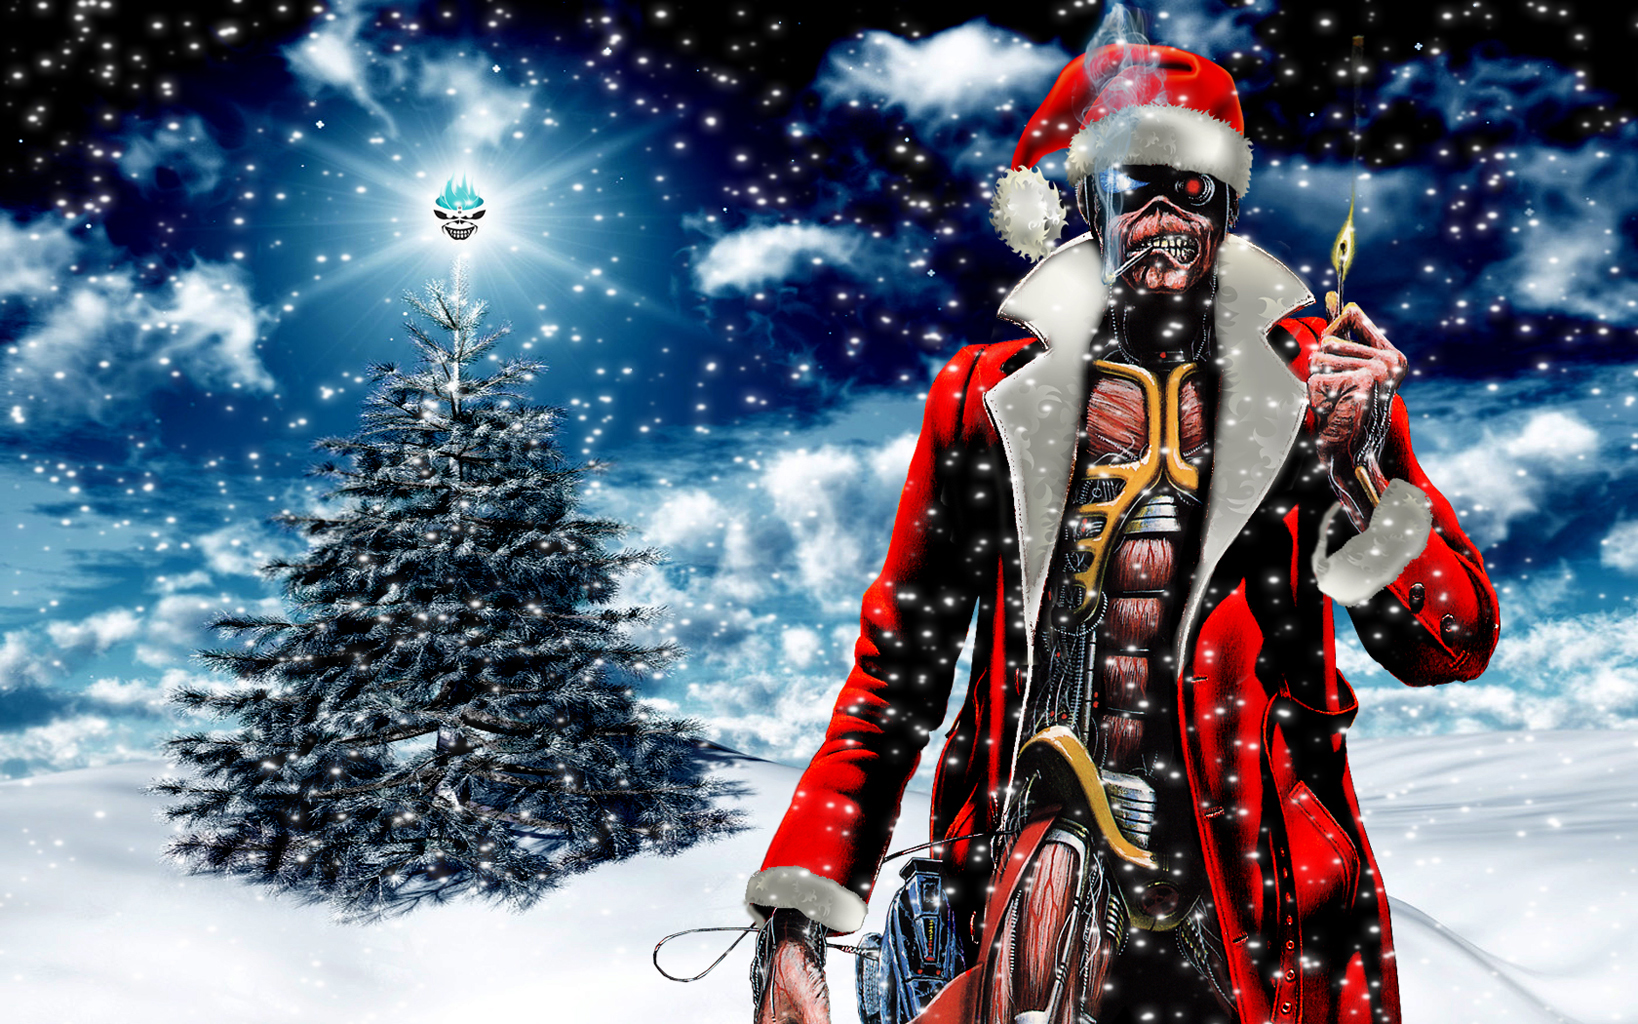 Santa Claus Wallpapers High Quality Download Free